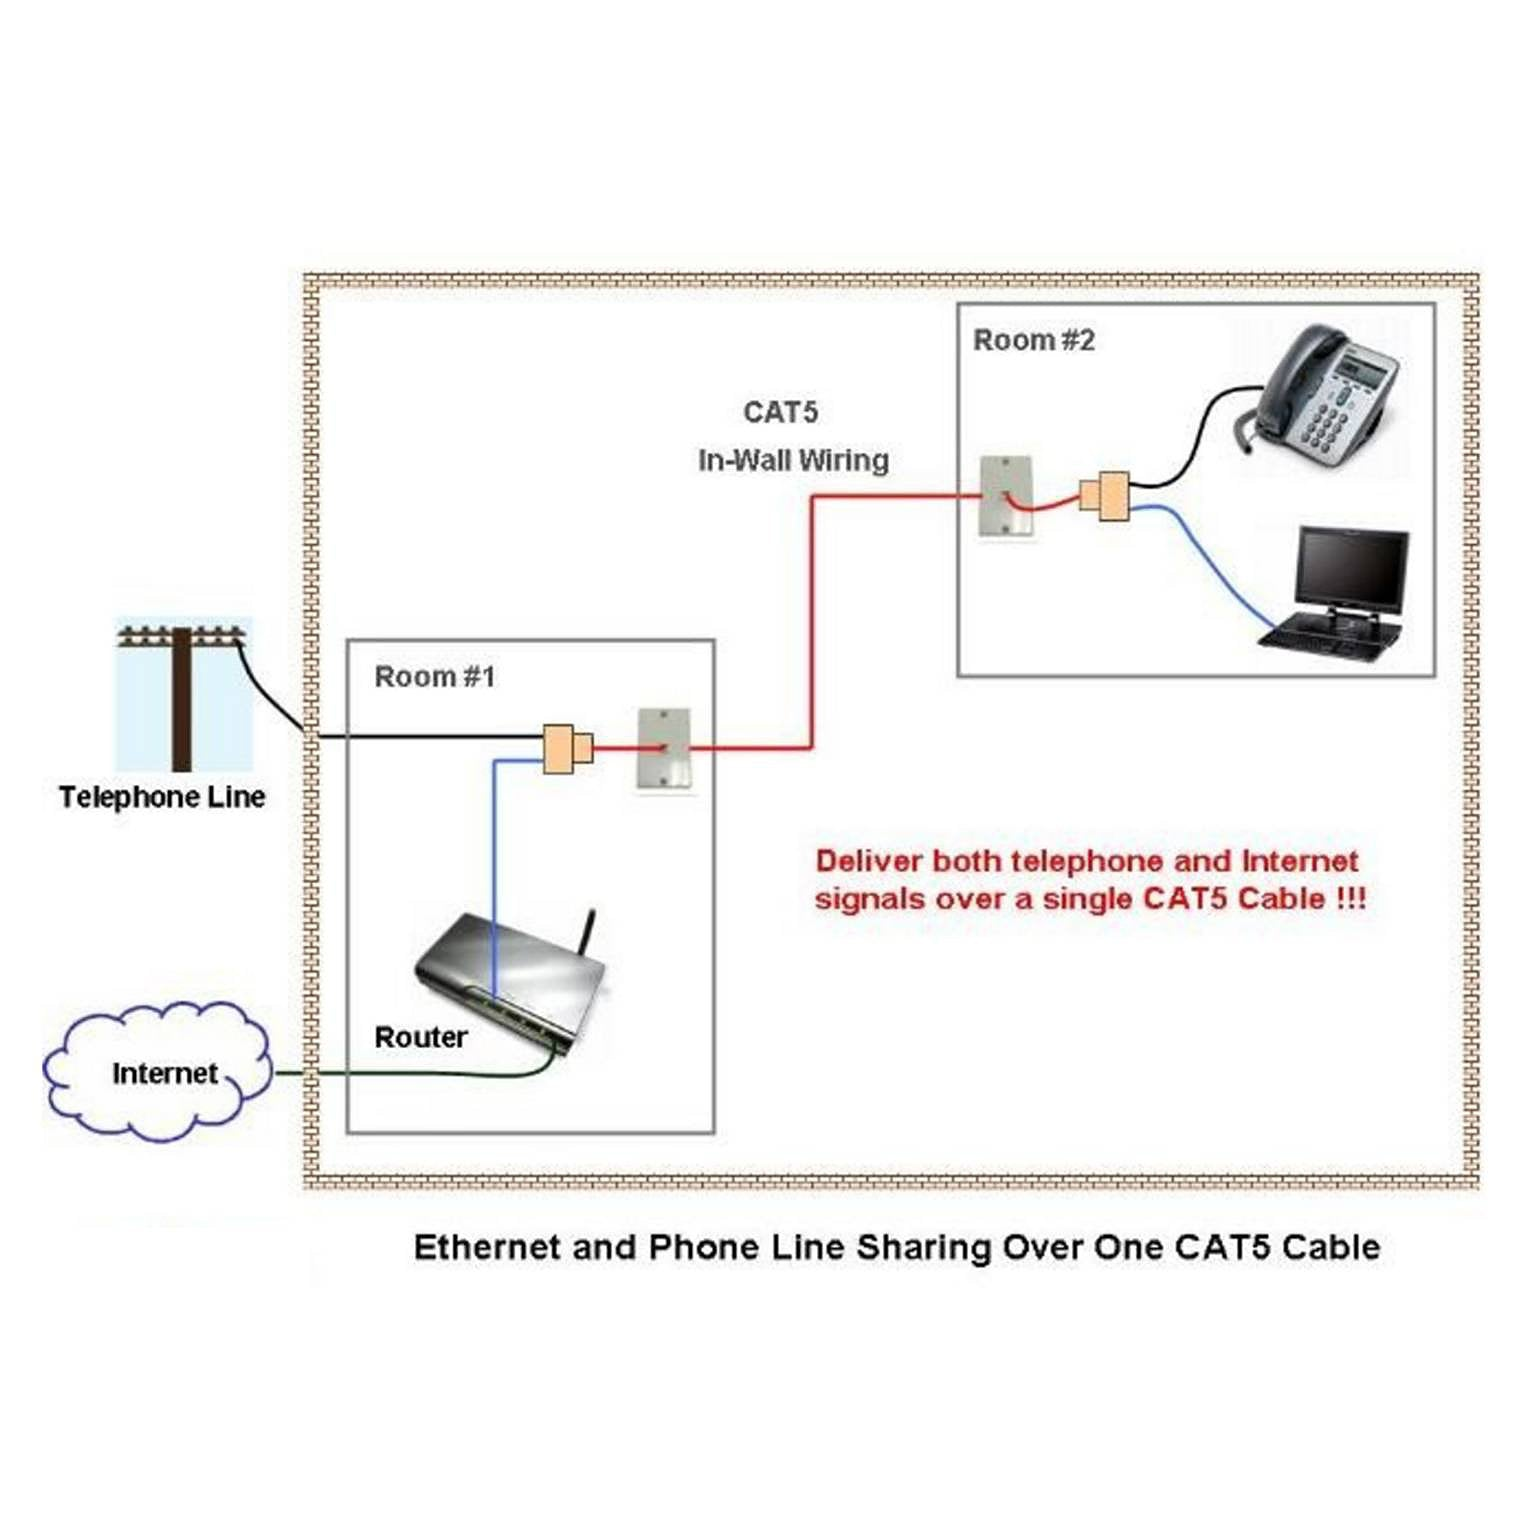 rj45 rj11 splitter cable sharing kit for ethernet and phone lines  load image into gallery viewer, rj45 rj11 splitter cable sharing kit for ethernet and